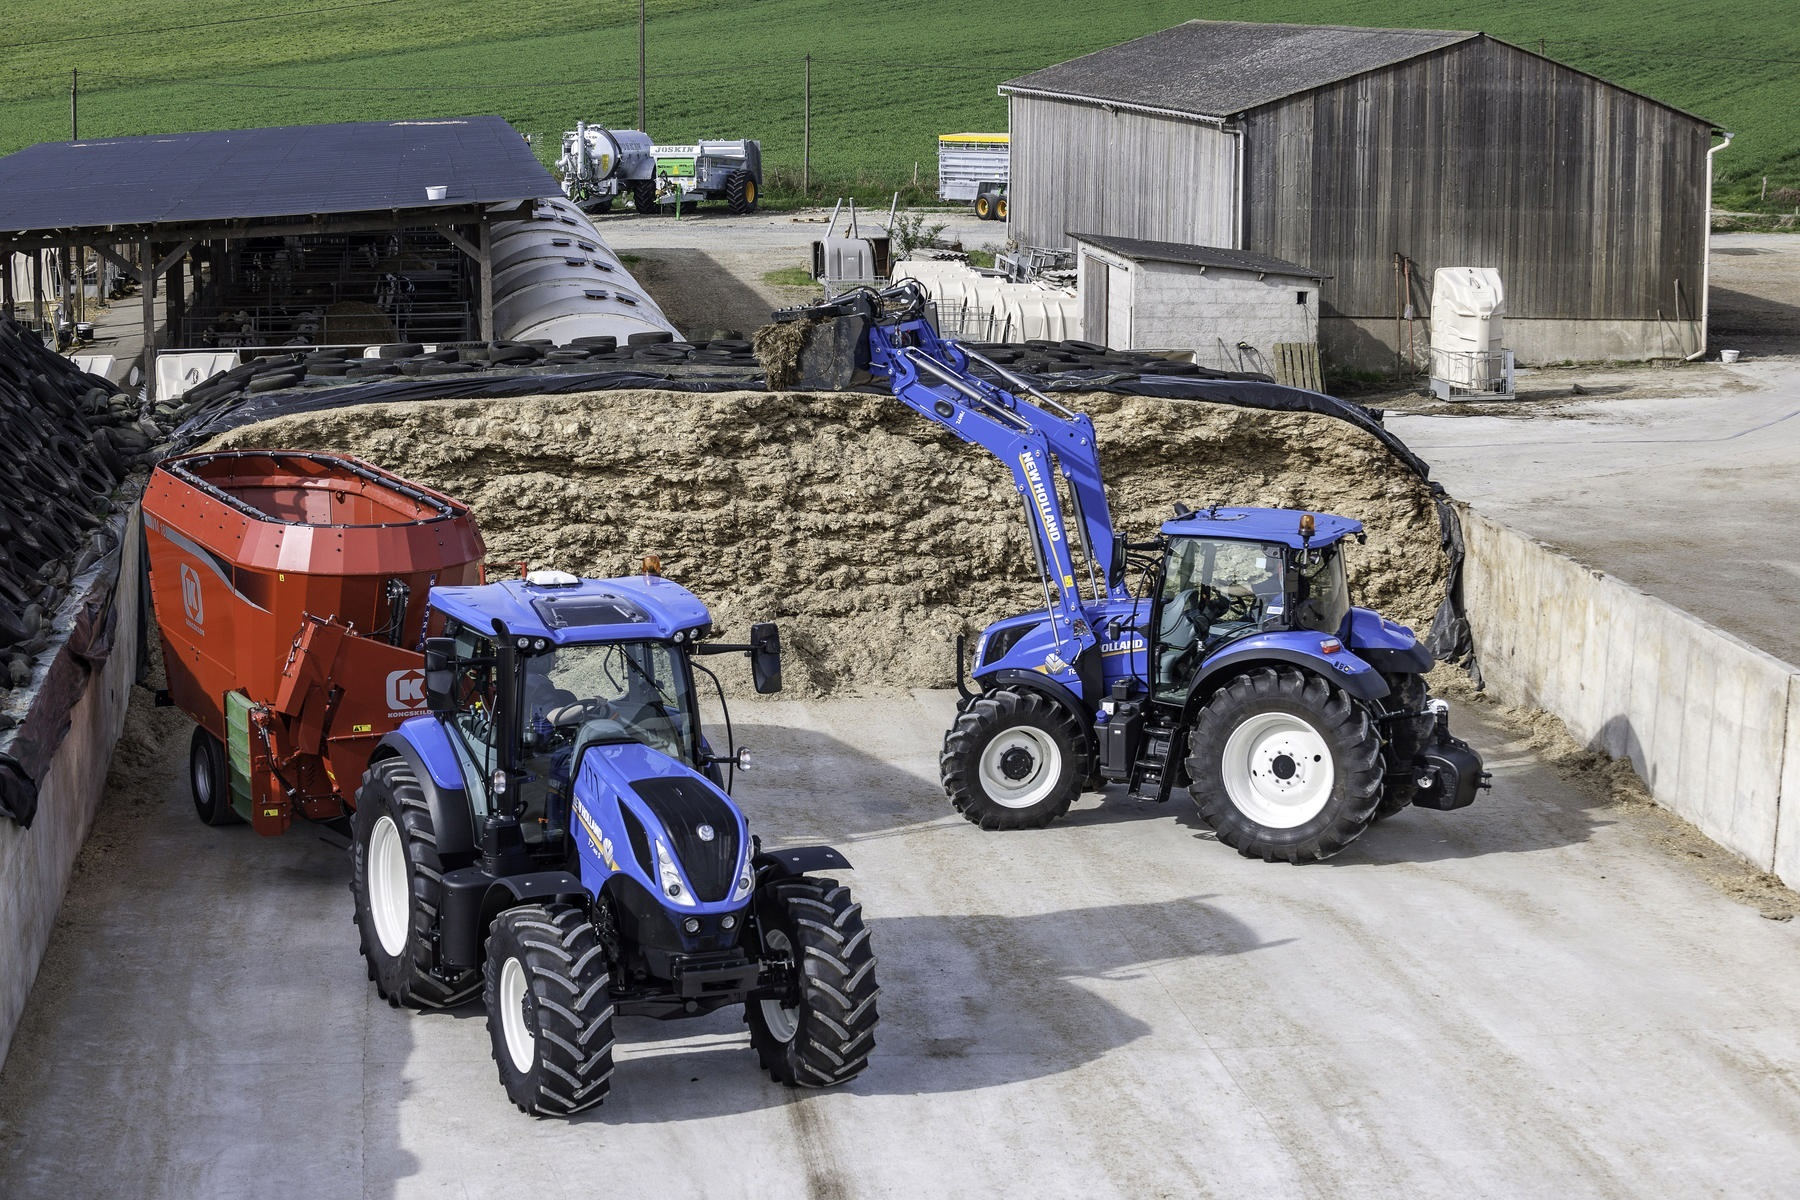 The Essential range is New Holland's no frills take on its popular T7 range